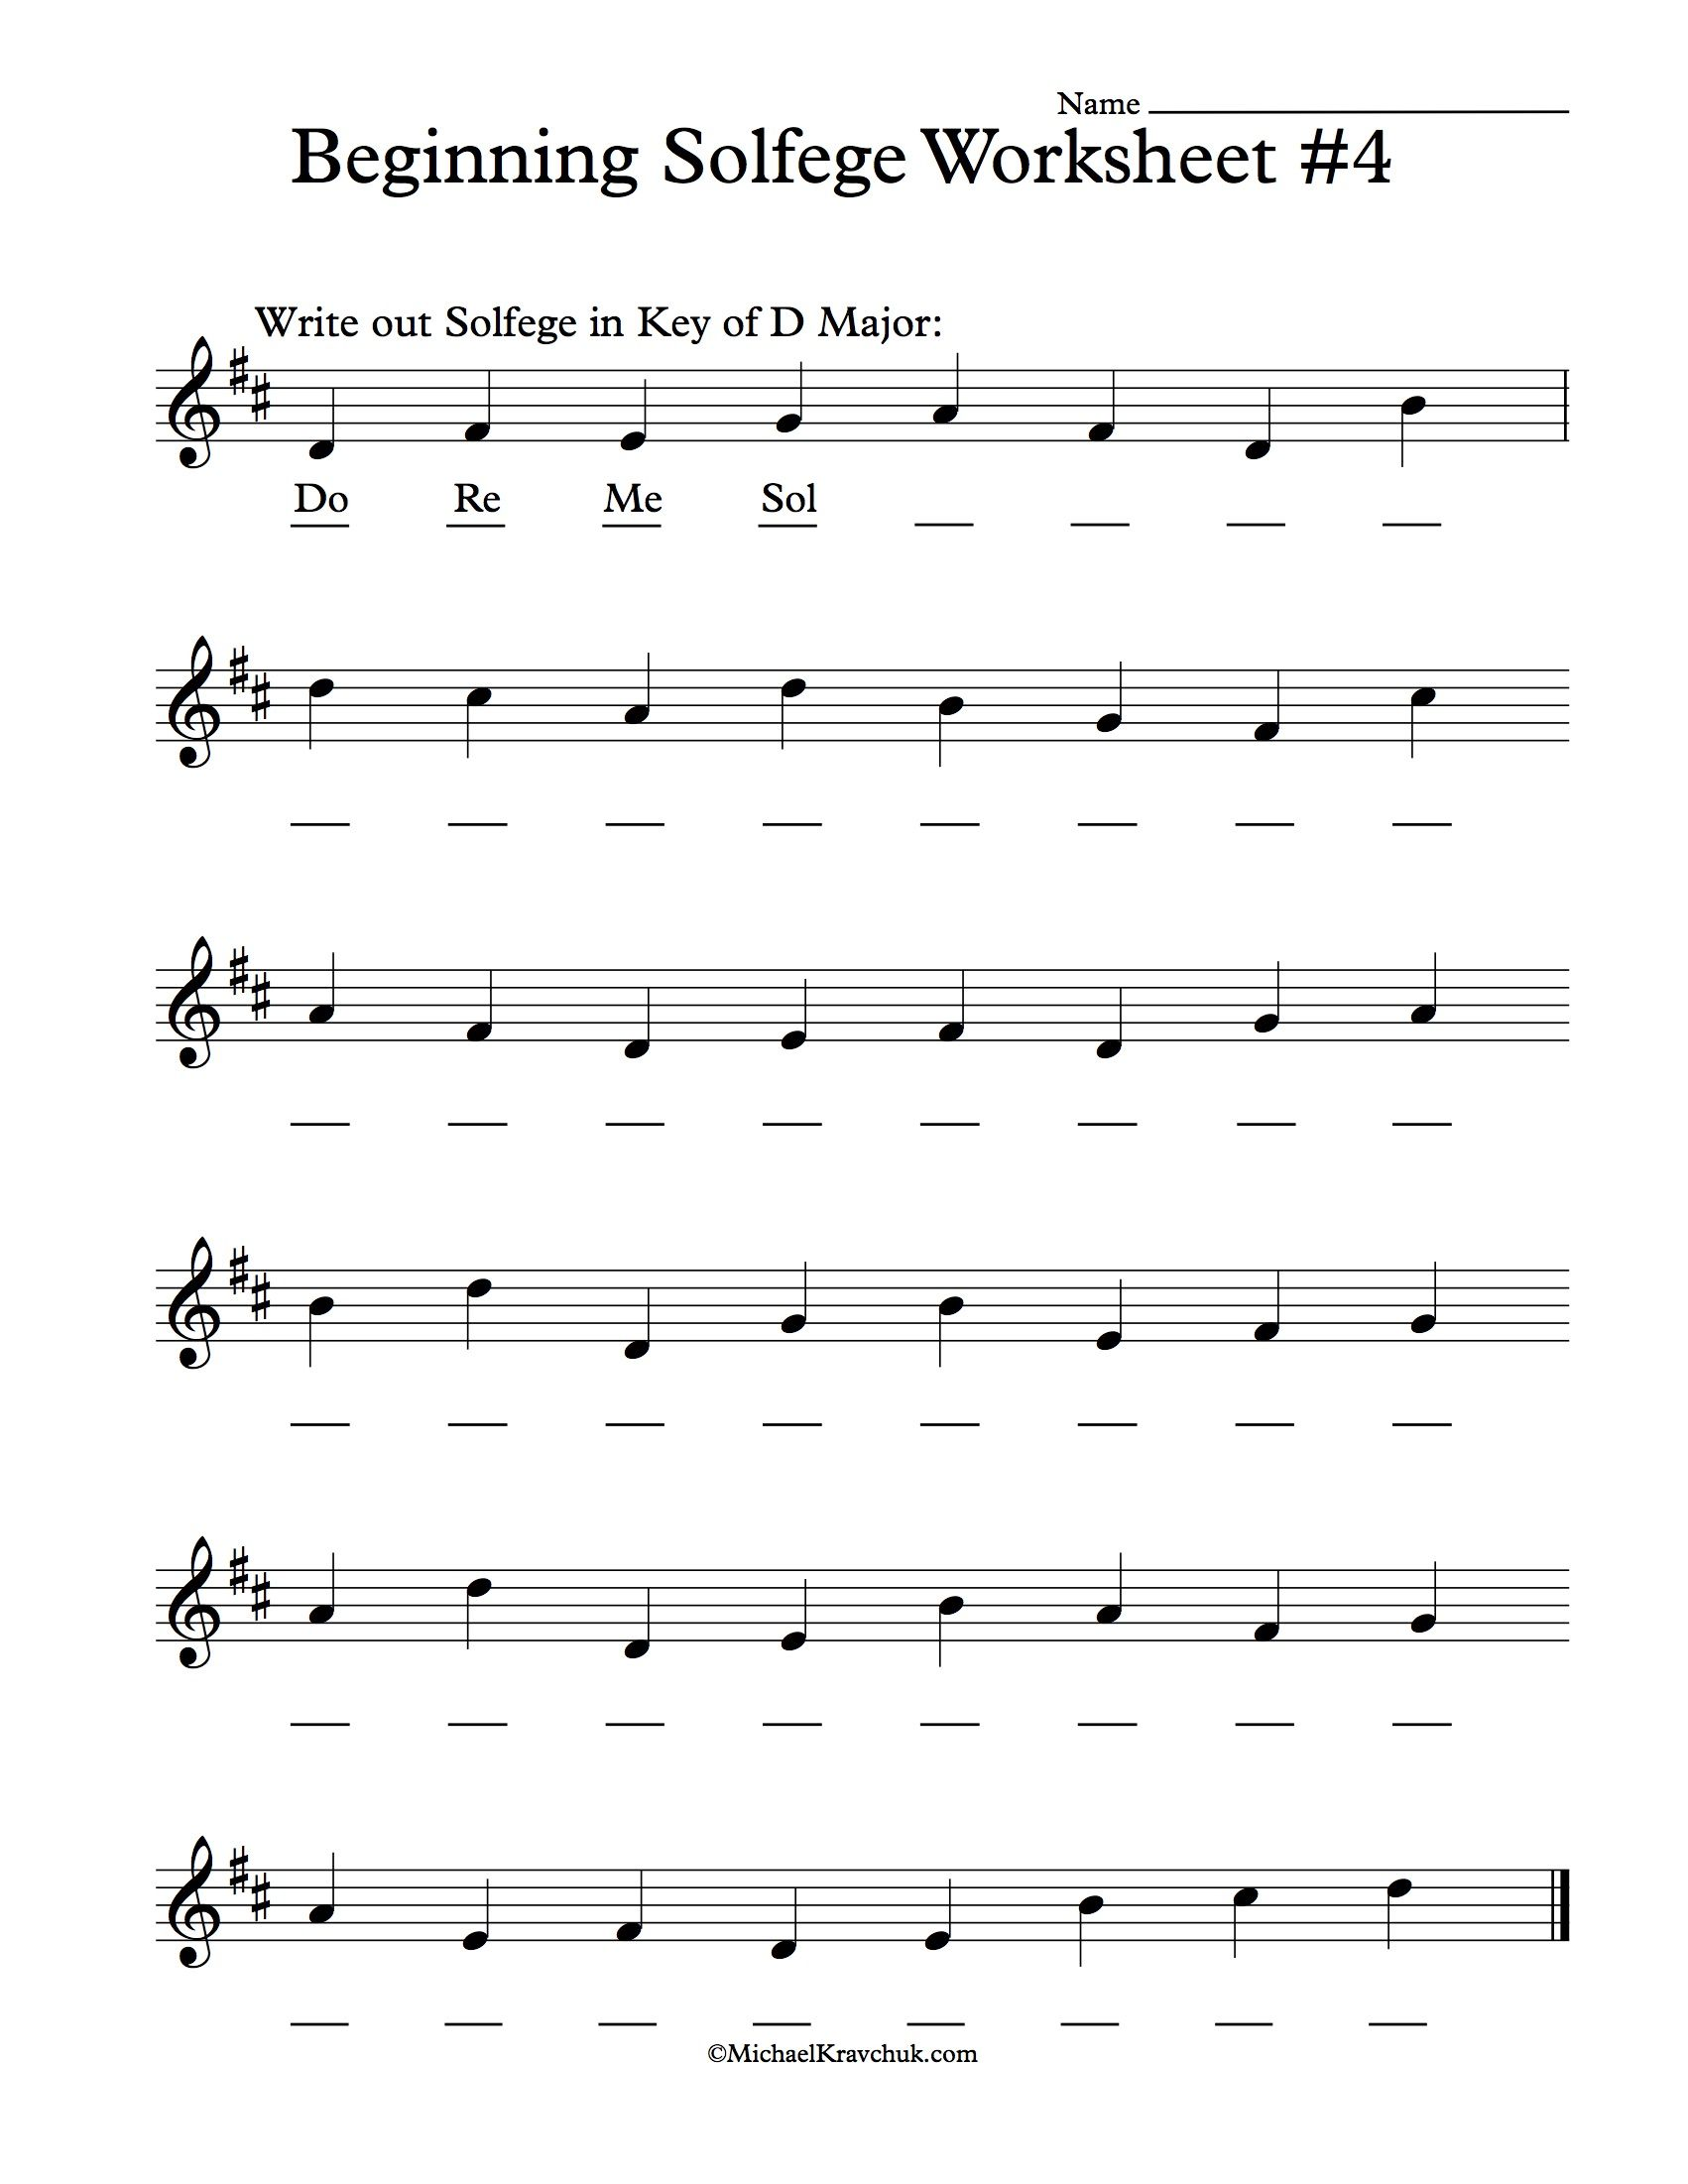 Beginning Solfege Worksheet 4 For Classroom Instructions